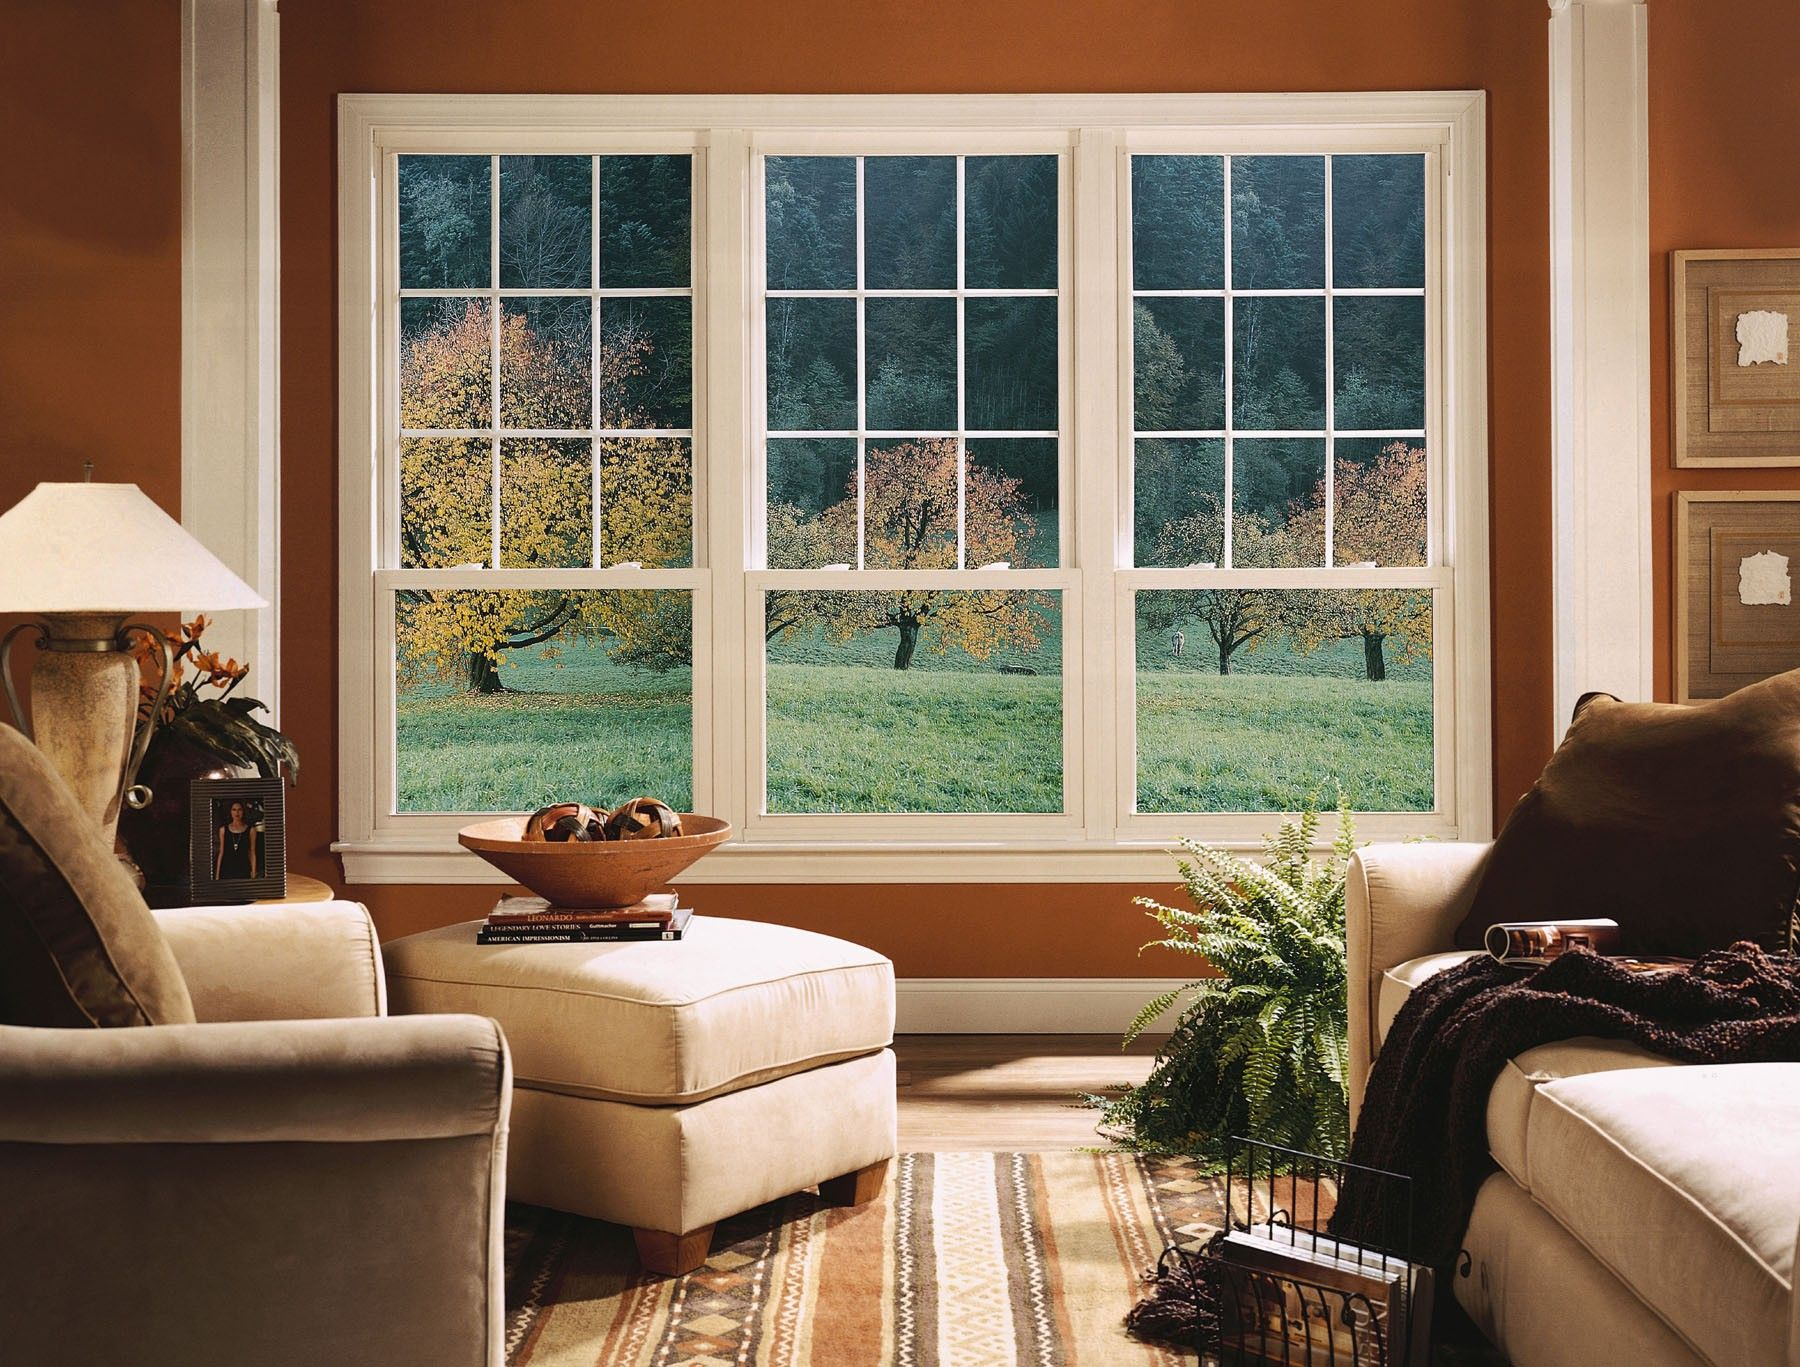 Create A Beautiful View With The Right Windows In Your Home Interior Windows House Window Design Living Room Windows